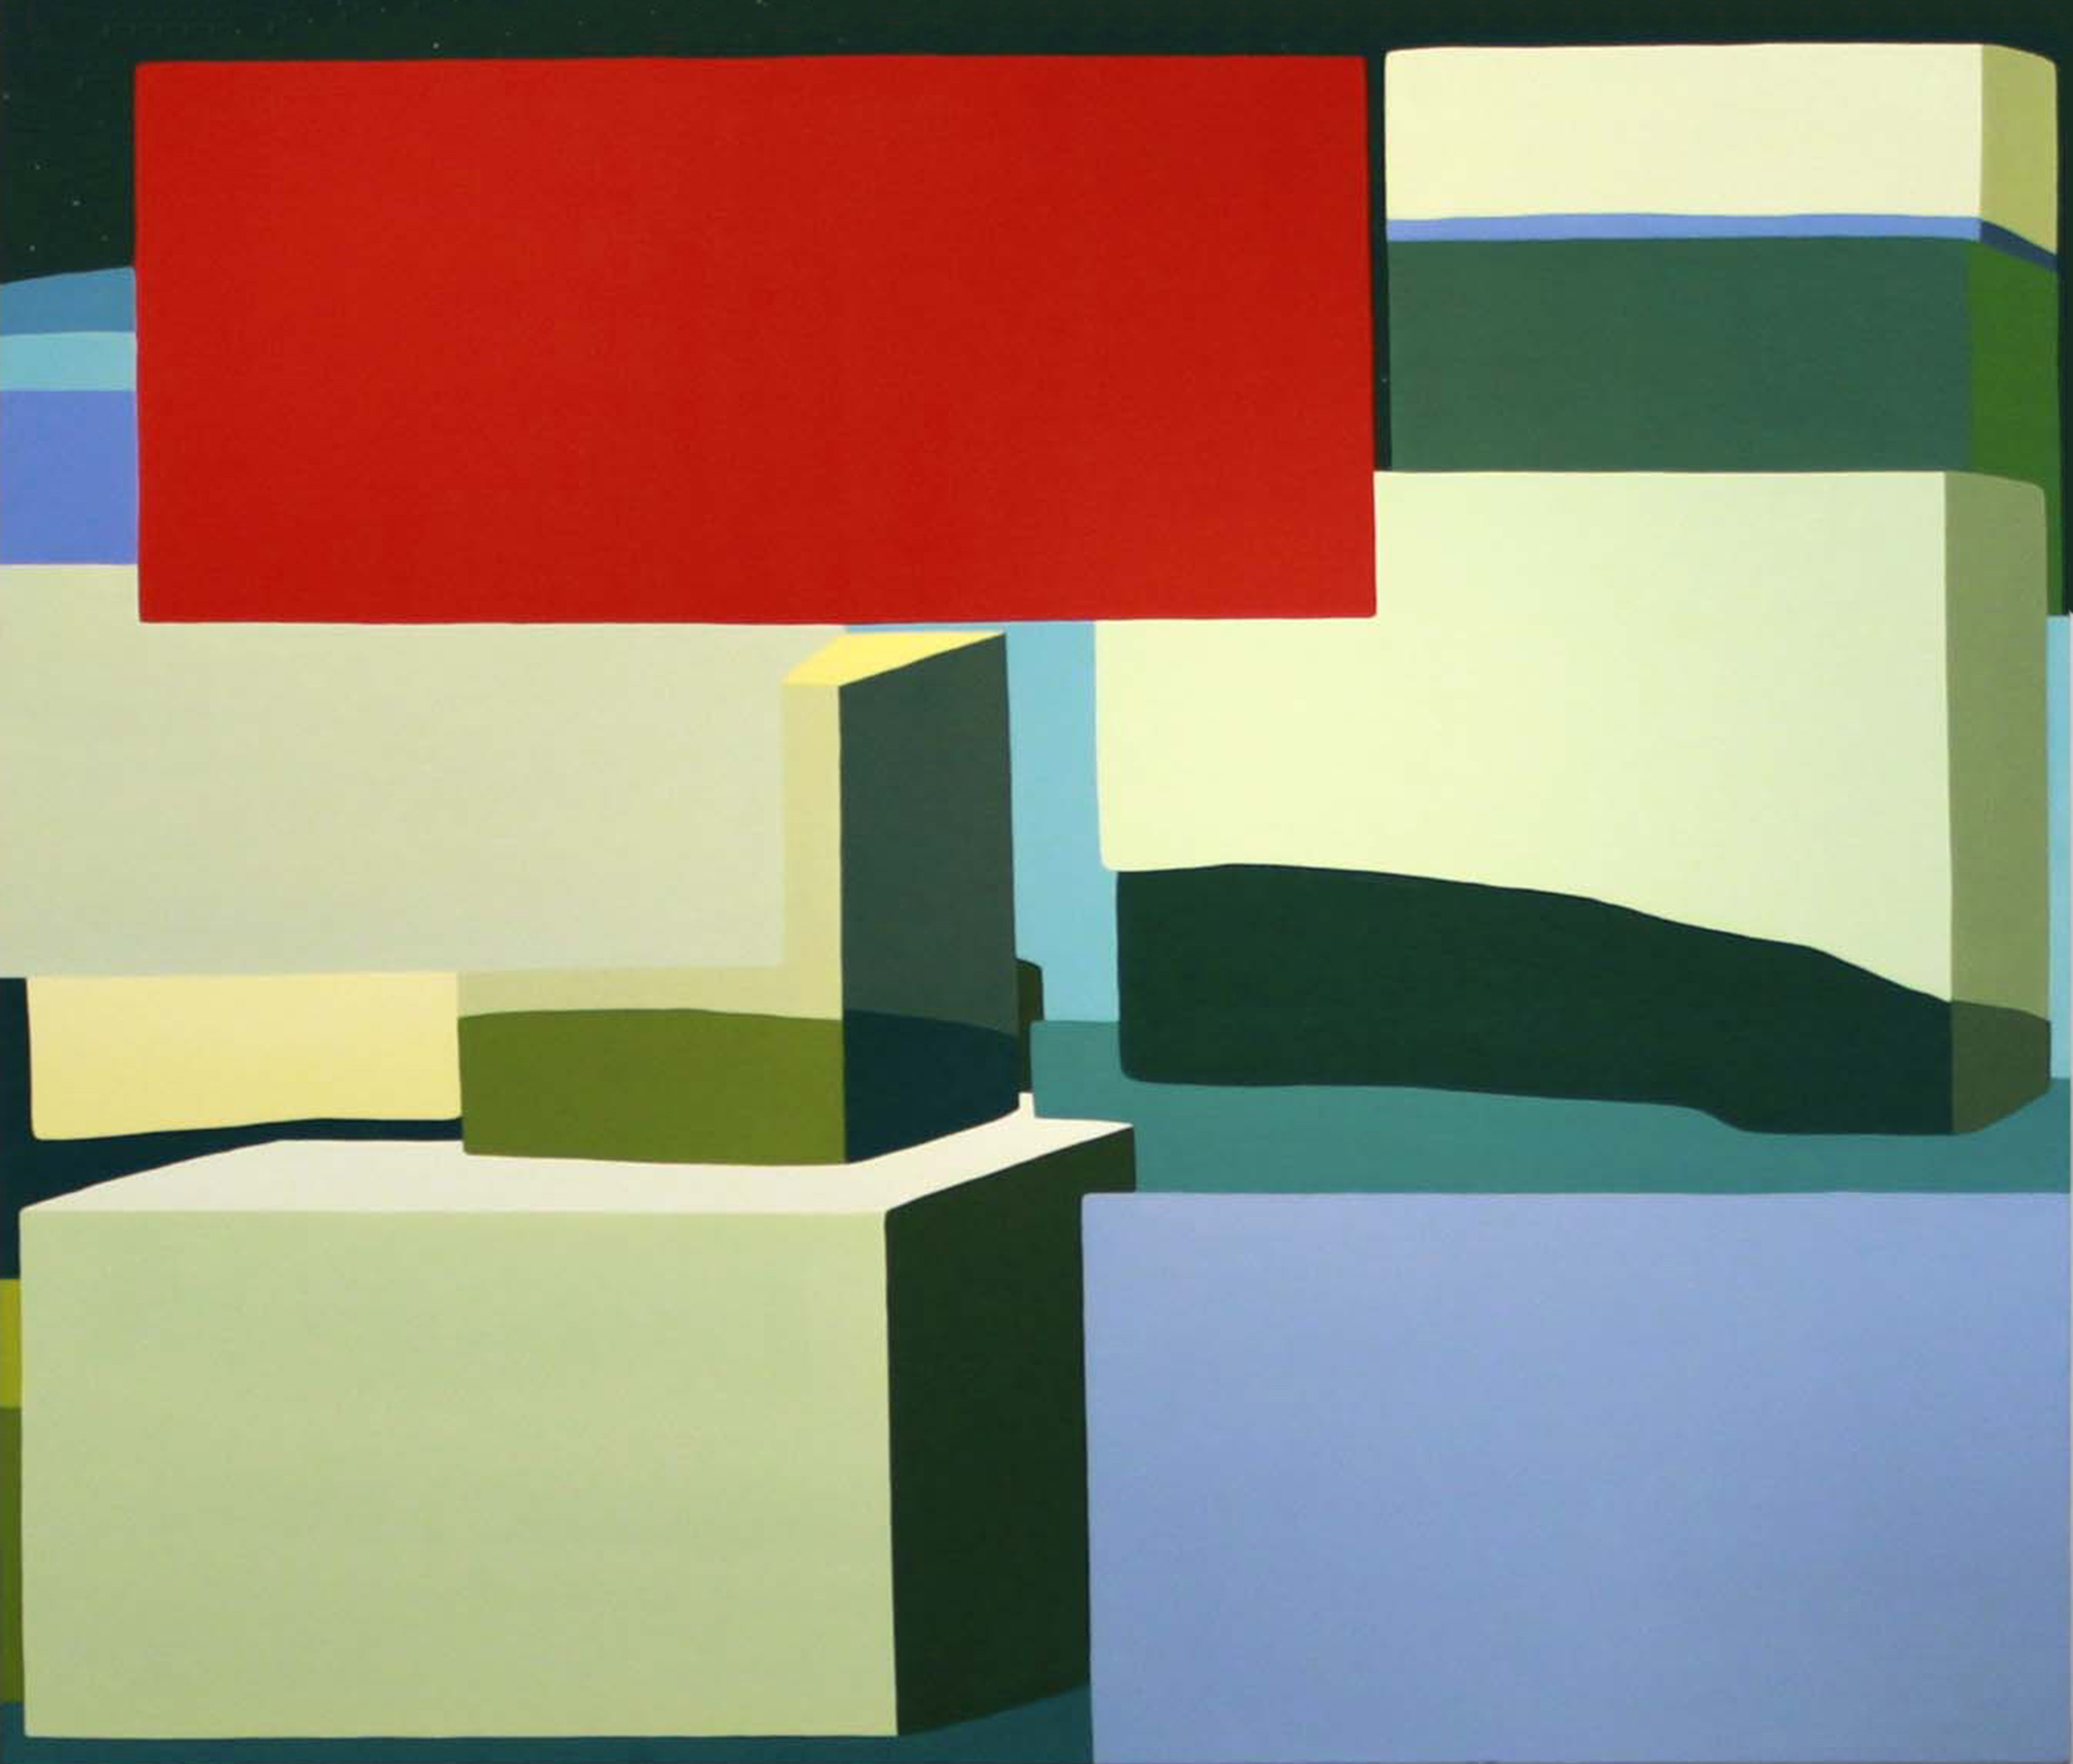 HedgeLand Painting #19  oil on canvas 57 x 67 inches; 114.8 x 170.2 centimeters